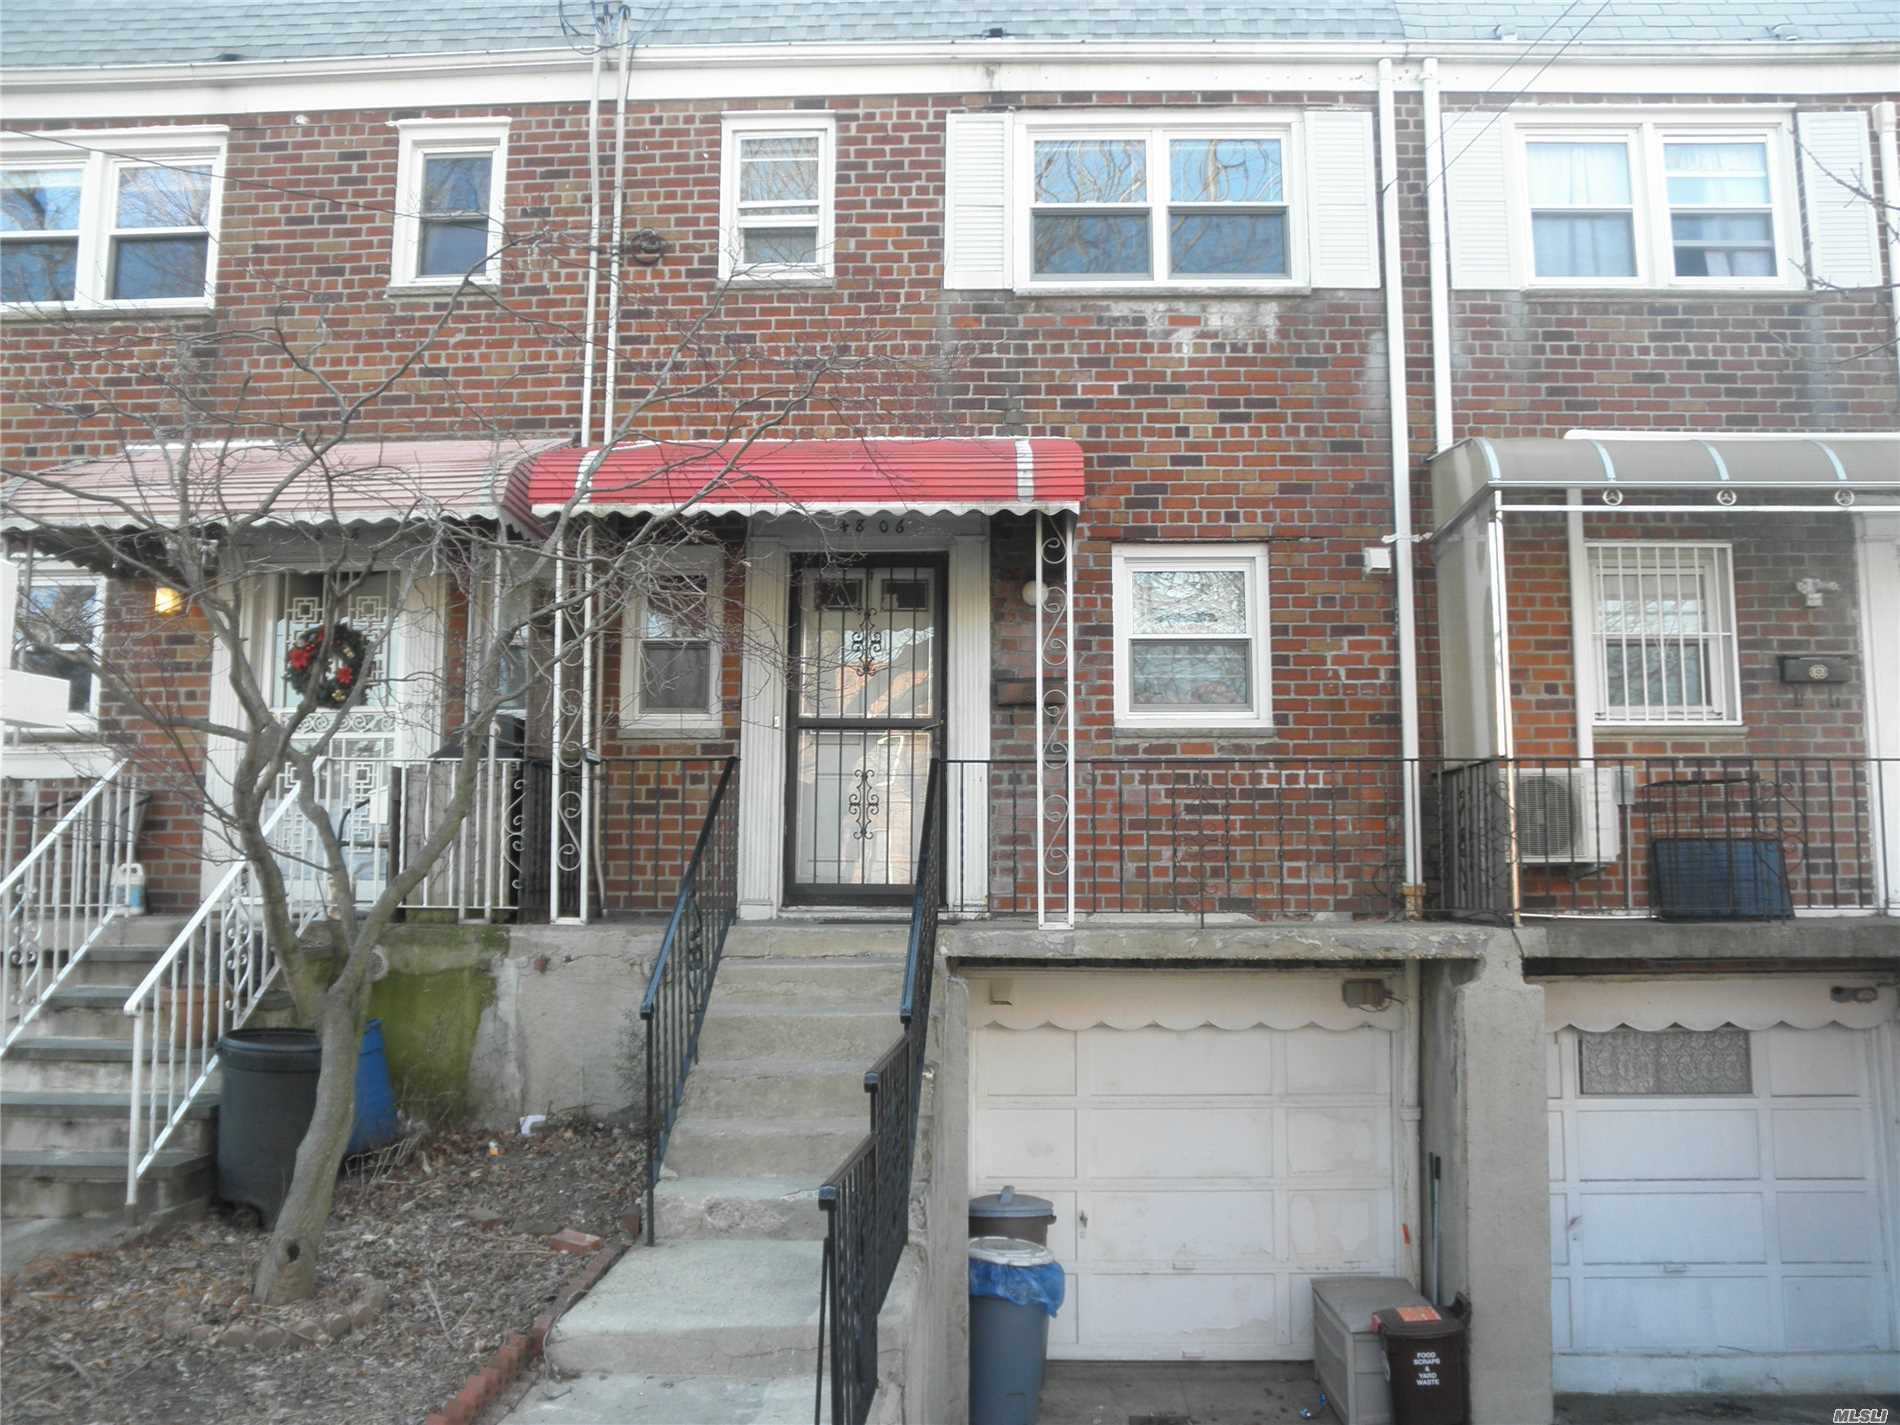 All Brick One Family House @ Prime Bayside Hills Location ! Nice Private Backyard . Walk To Lirr & Buses Q27/31./ Near Shops, Close To Everything . Top School Dist #26 .